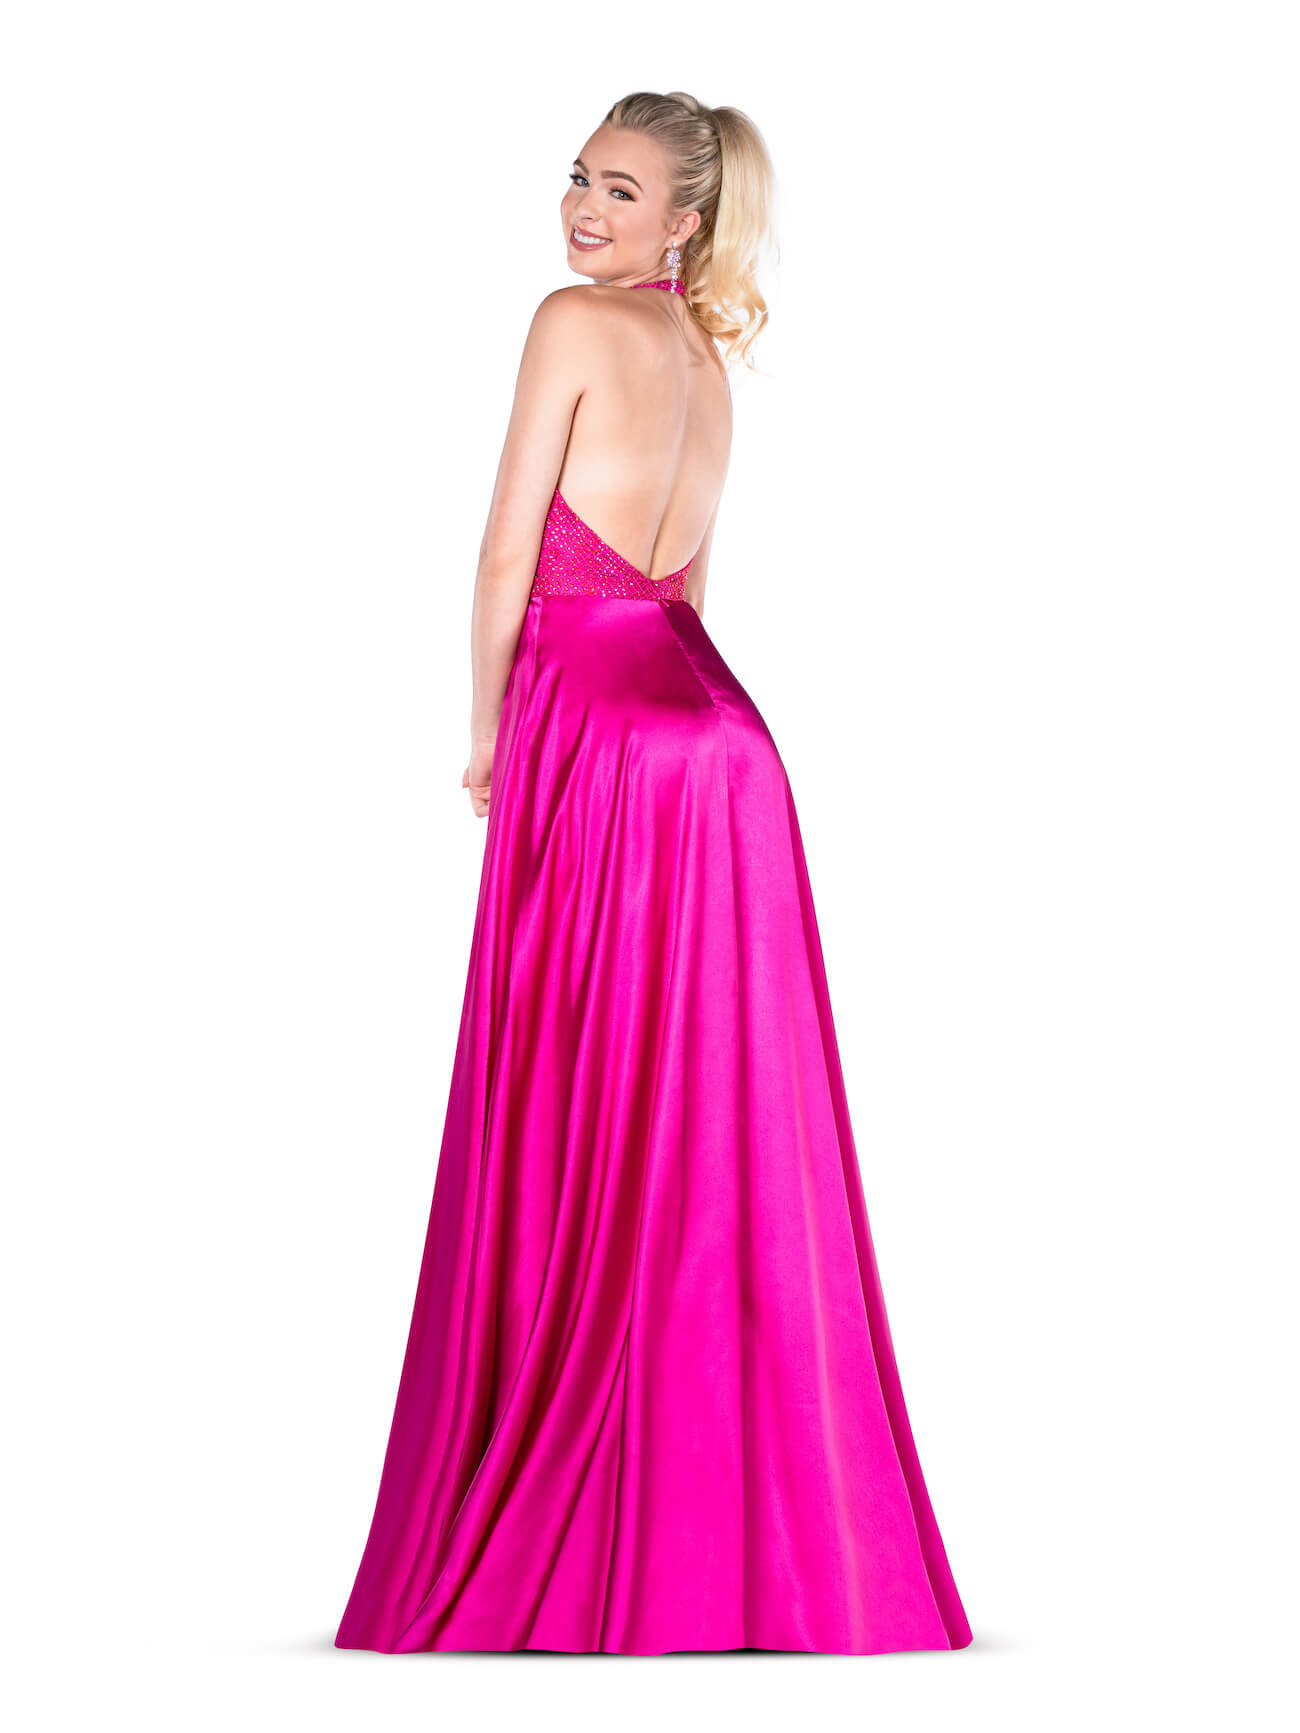 Vienna Pink Size 2 A-line Side slit Dress on Queenly